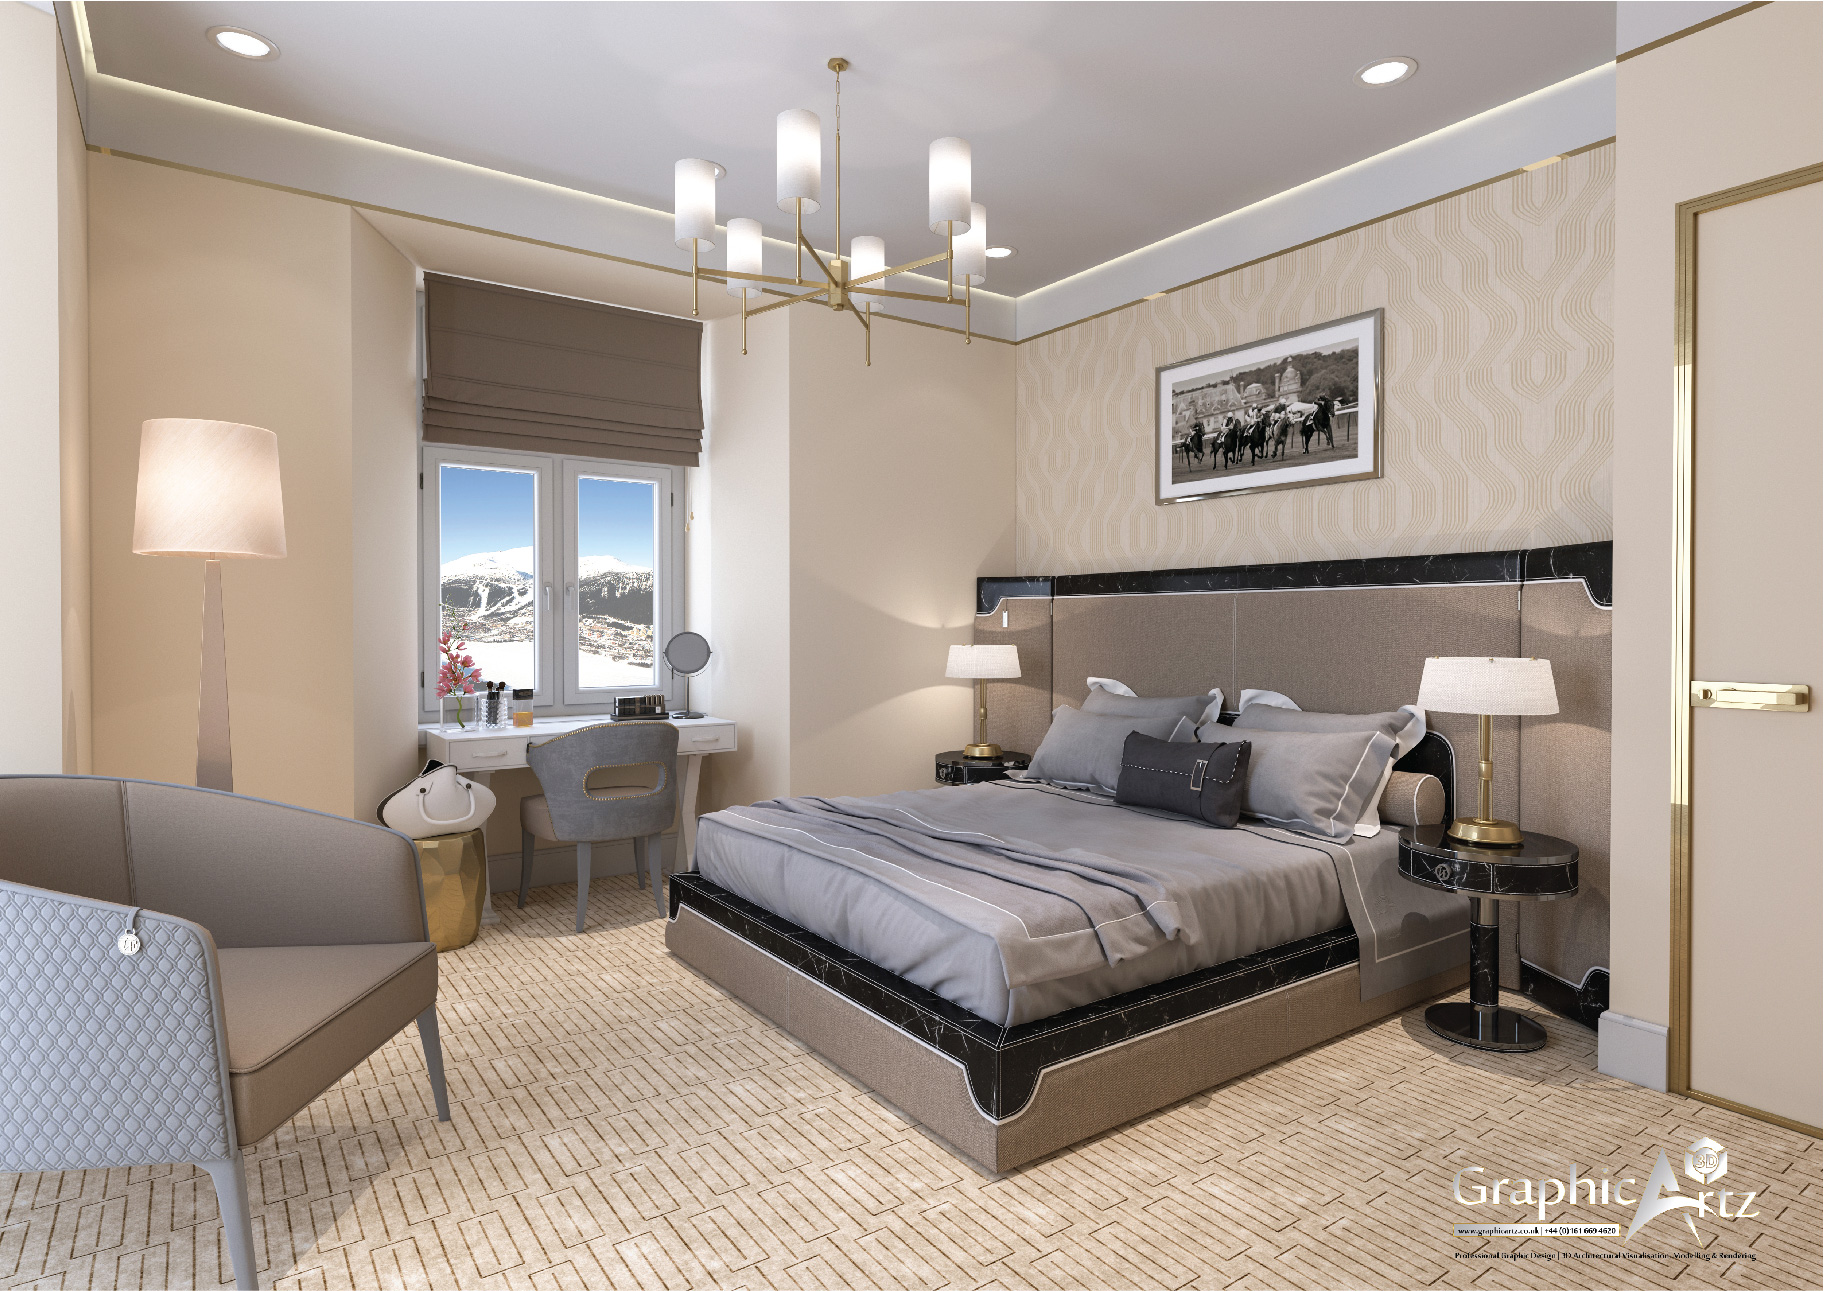 Interior CGI Bedroom 1